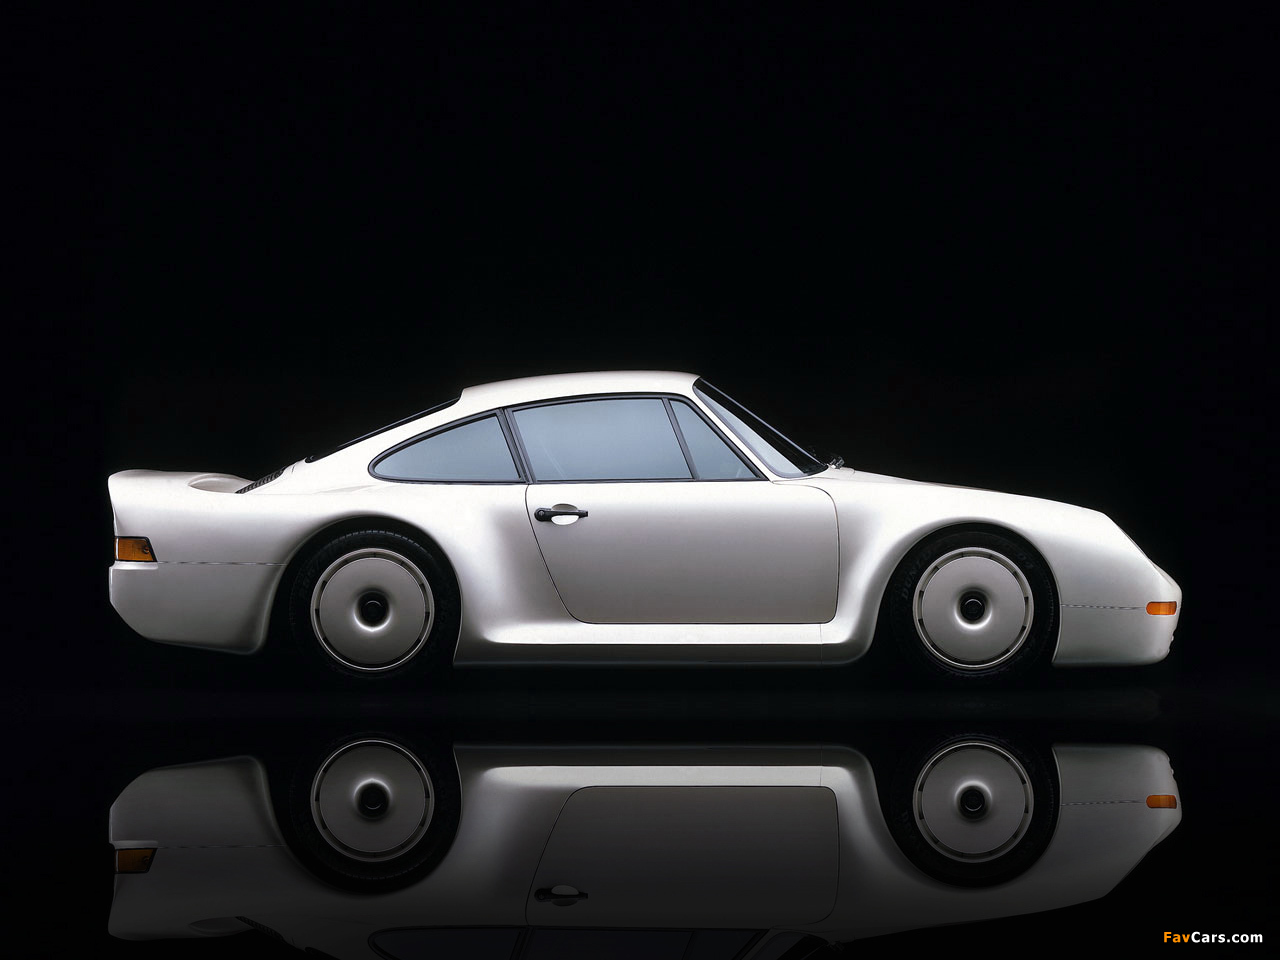 Wallpapers Porsche 959 Gruppe B Prototype 1983 62539 moreover Lexus Advertisement Hybrid Cars Has Infuriated Electric Car Fans Who Accuse Toyota 1678790 also Junkyard Find 1975 Ford Maverick further Nikola Teslas Most Extraordinary Interview Hidden For 116 Years furthermore Peugeot 206 Cc Hdi t 6952. on tesla advertising